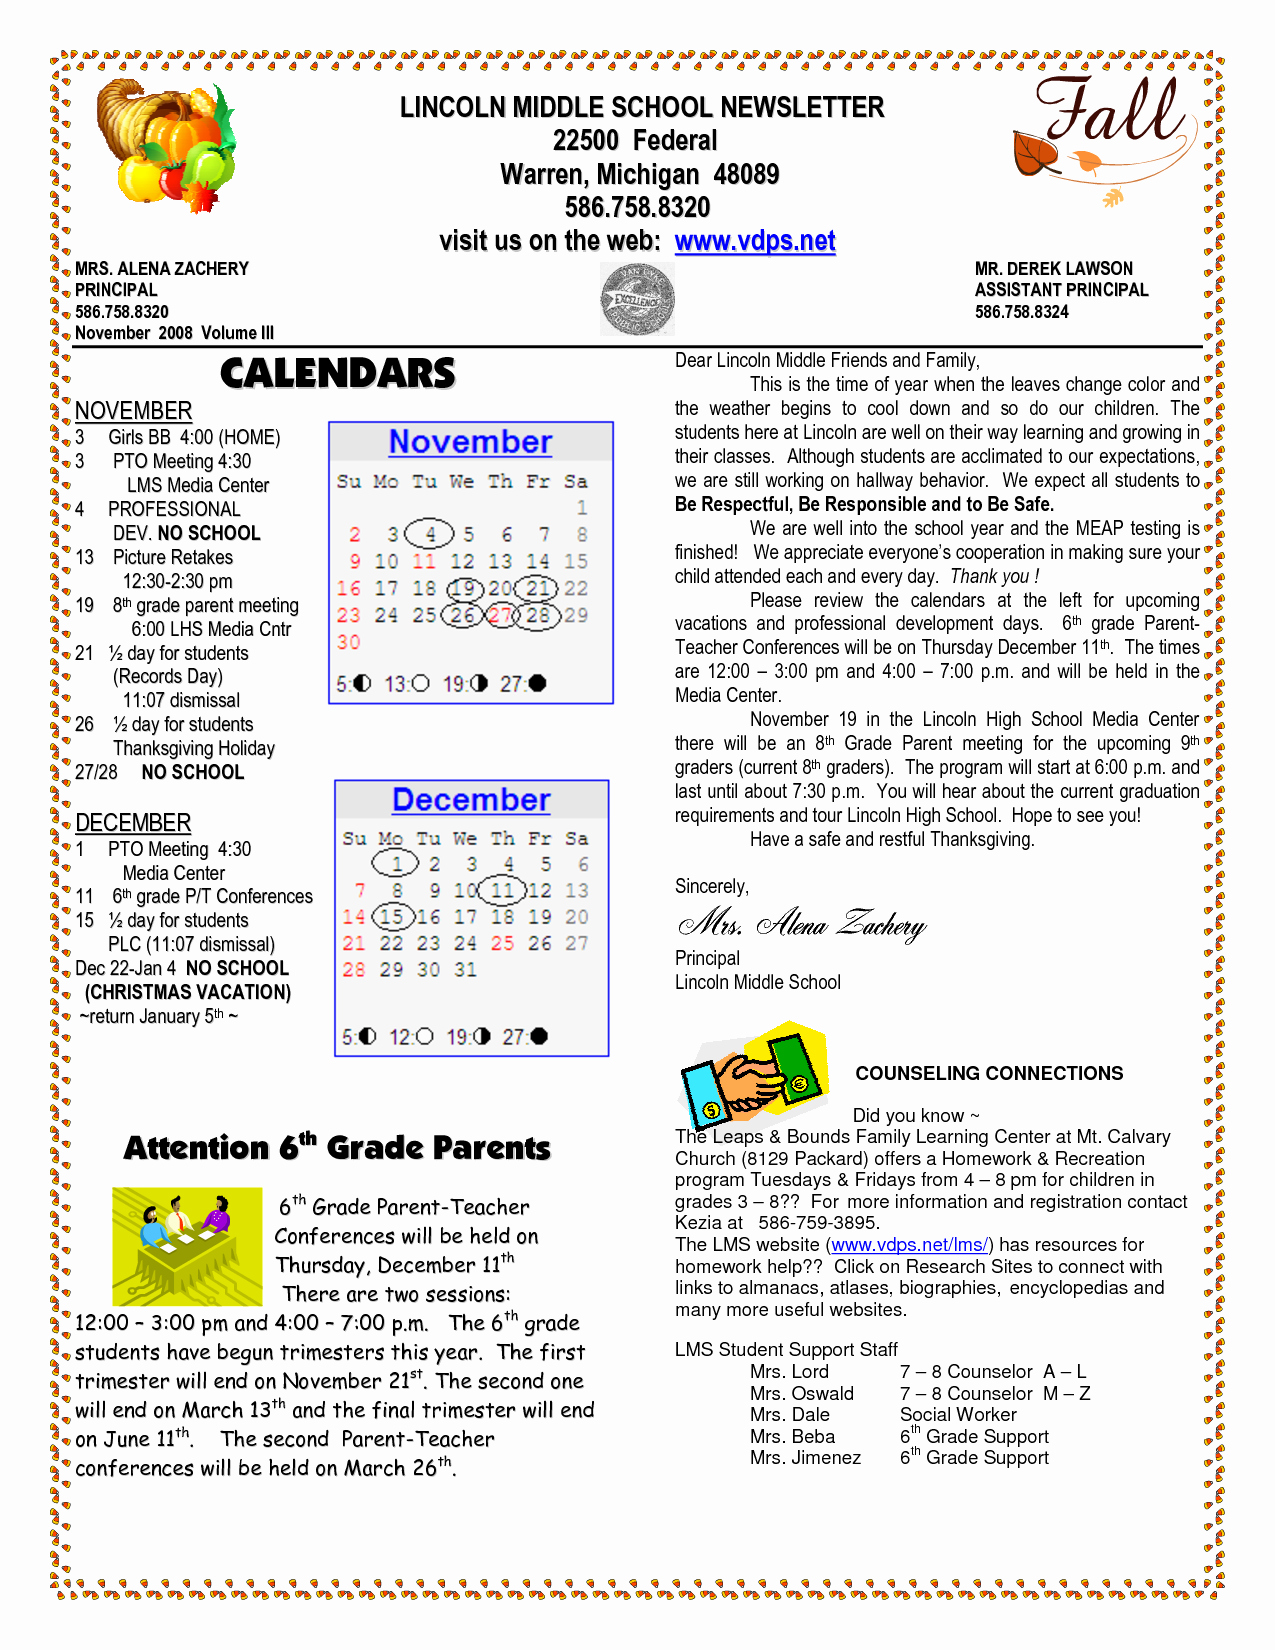 Newsletter for Parents From Teachers Best Of School Newsletter Templates